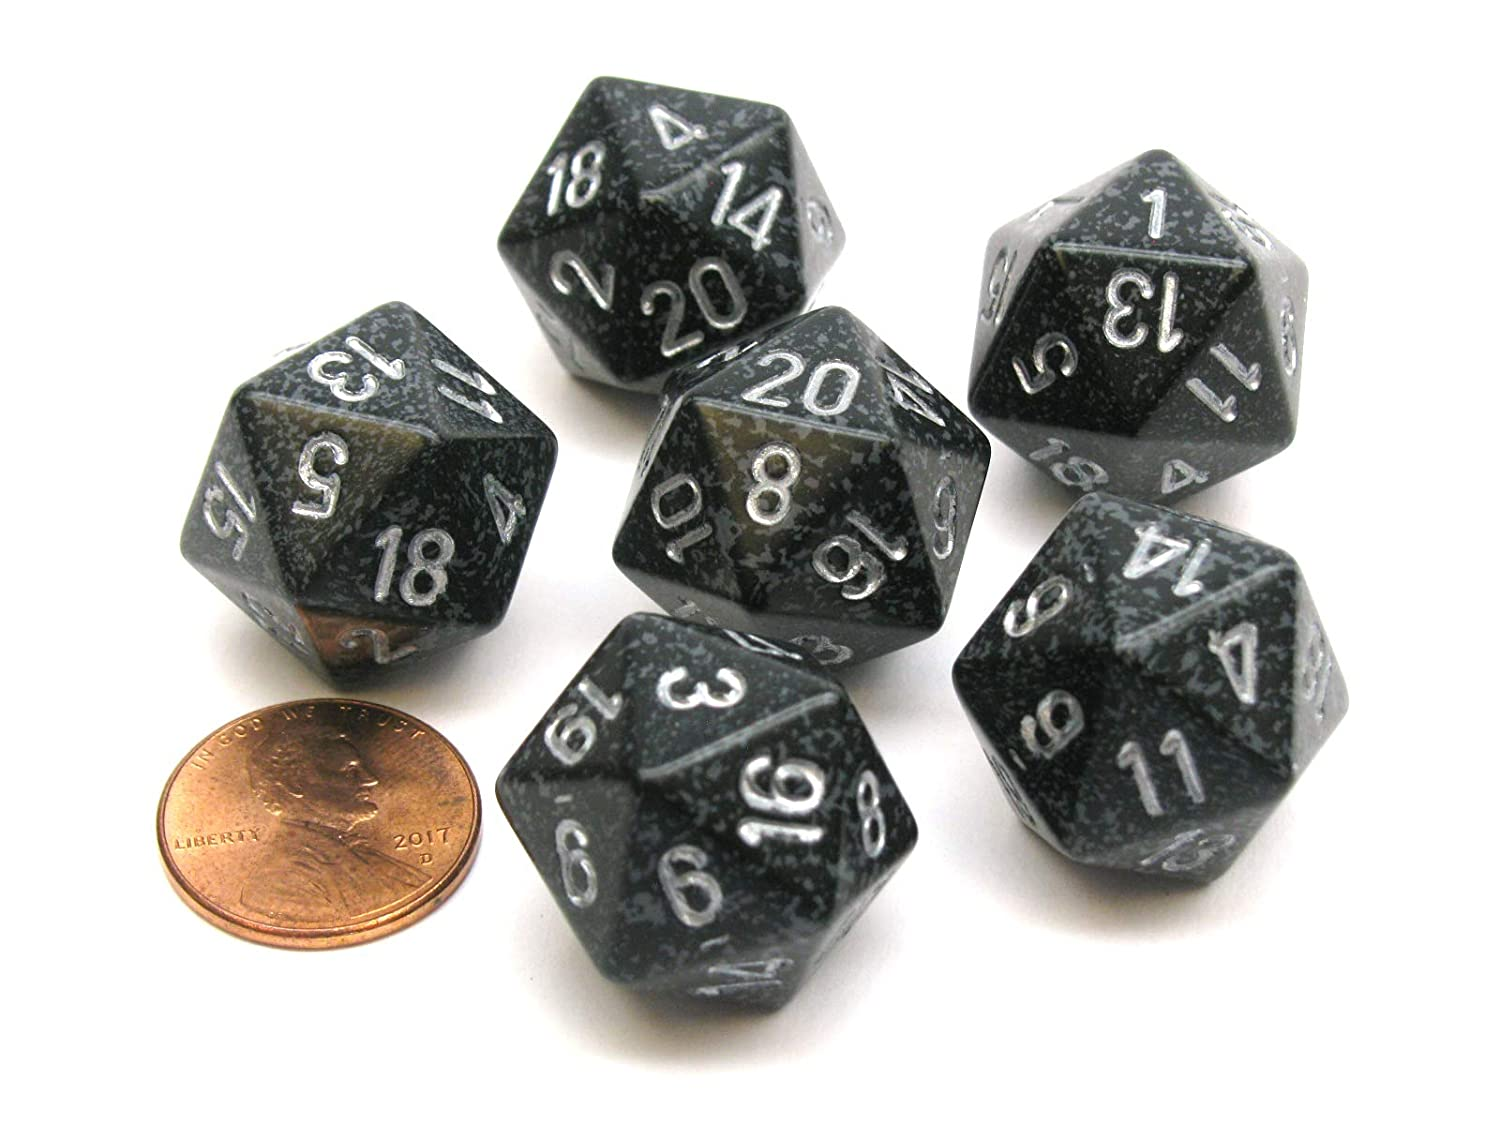 Amazon.com: Chessex Speckled 20 Sided D20 Dice, 6 Pieces ...